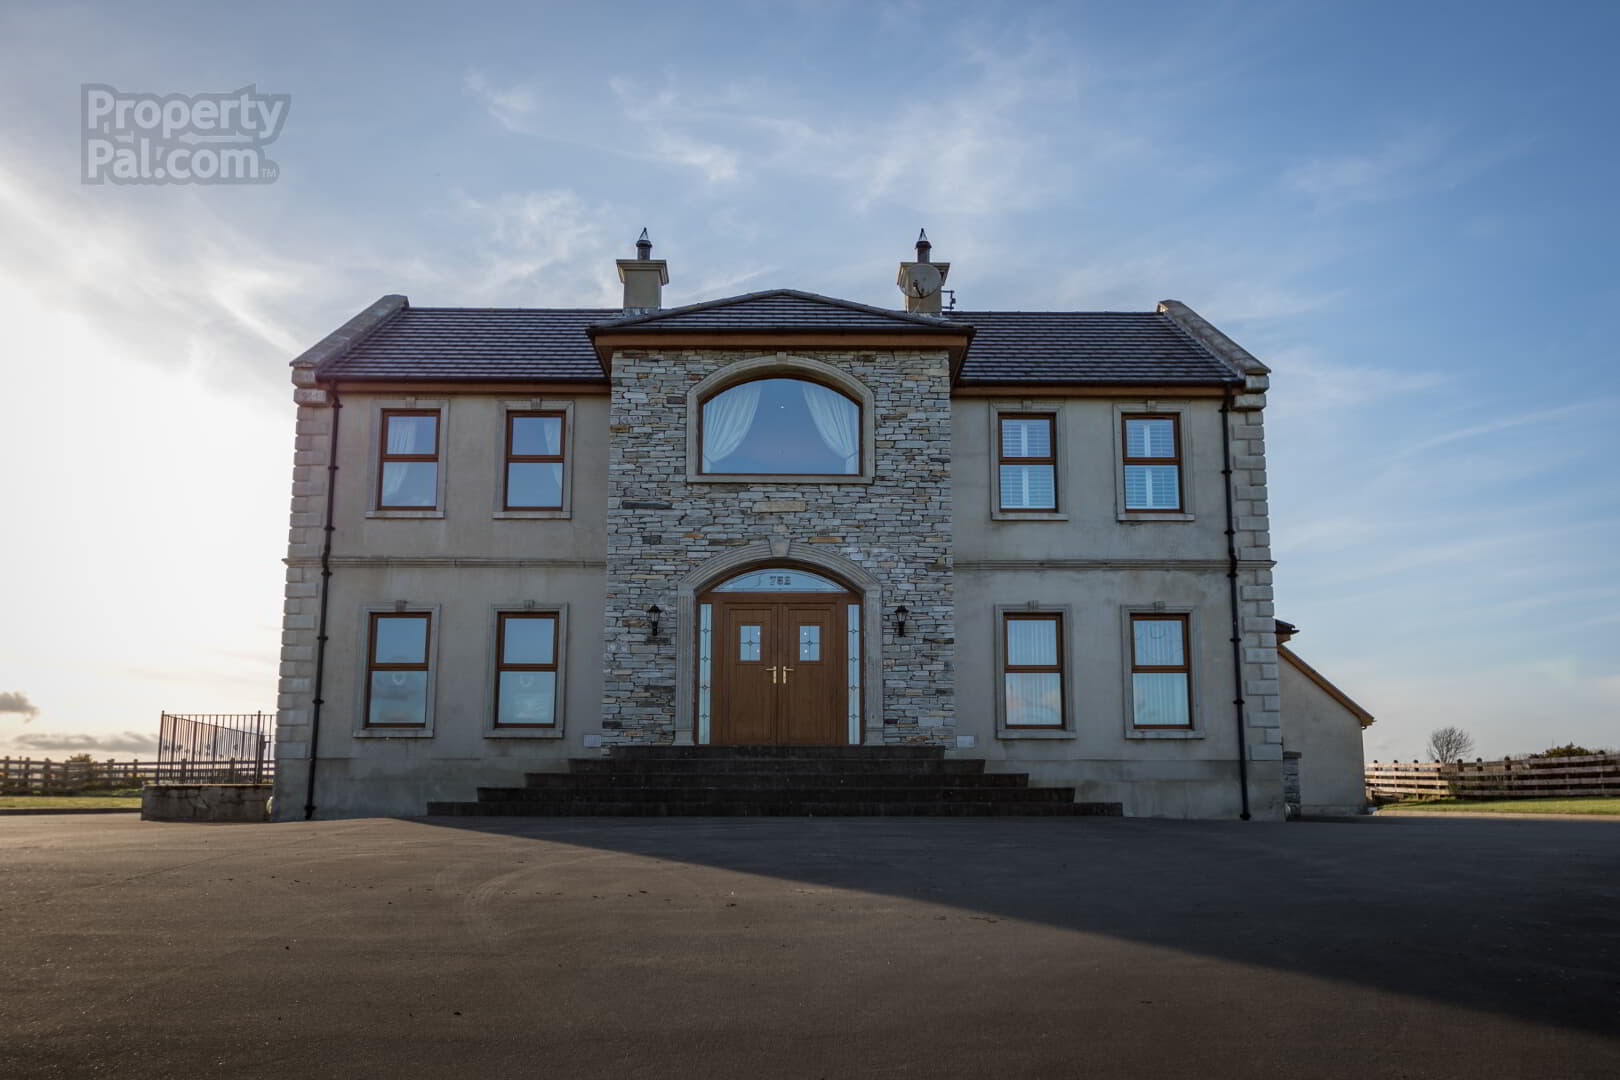 Houses for sale Dungiven, County Derry